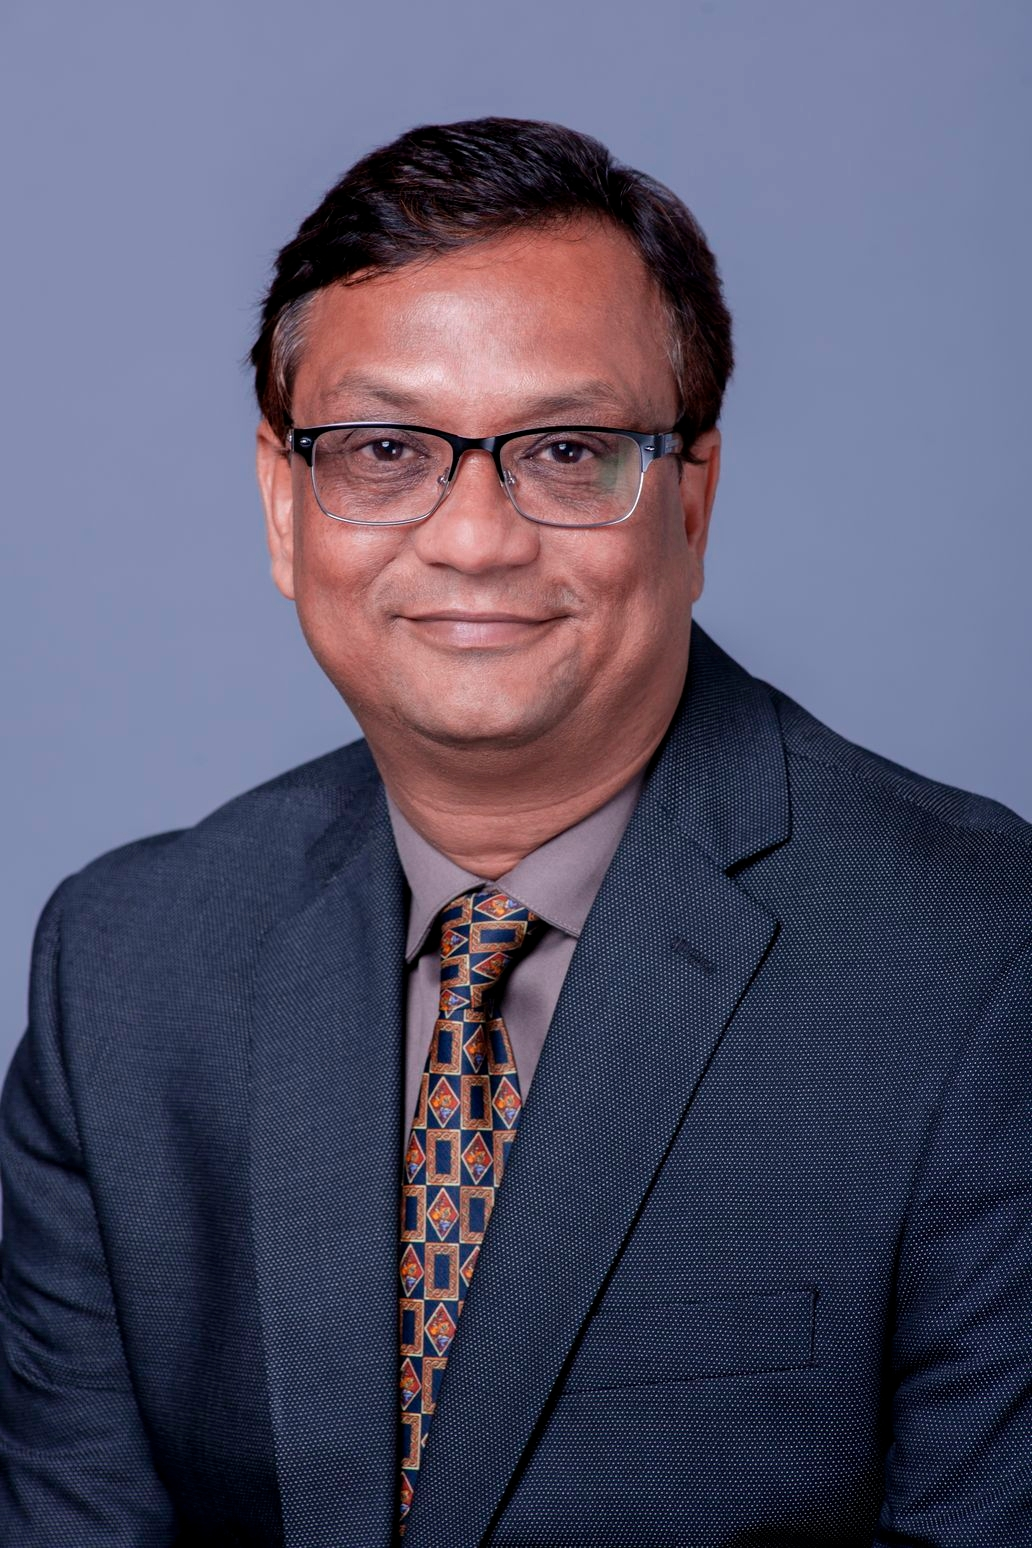 Lokesh K. Jain has been promoted to the position of Vice-President, Research & Development and Technical Services at Gordon Laboratories, Inc.